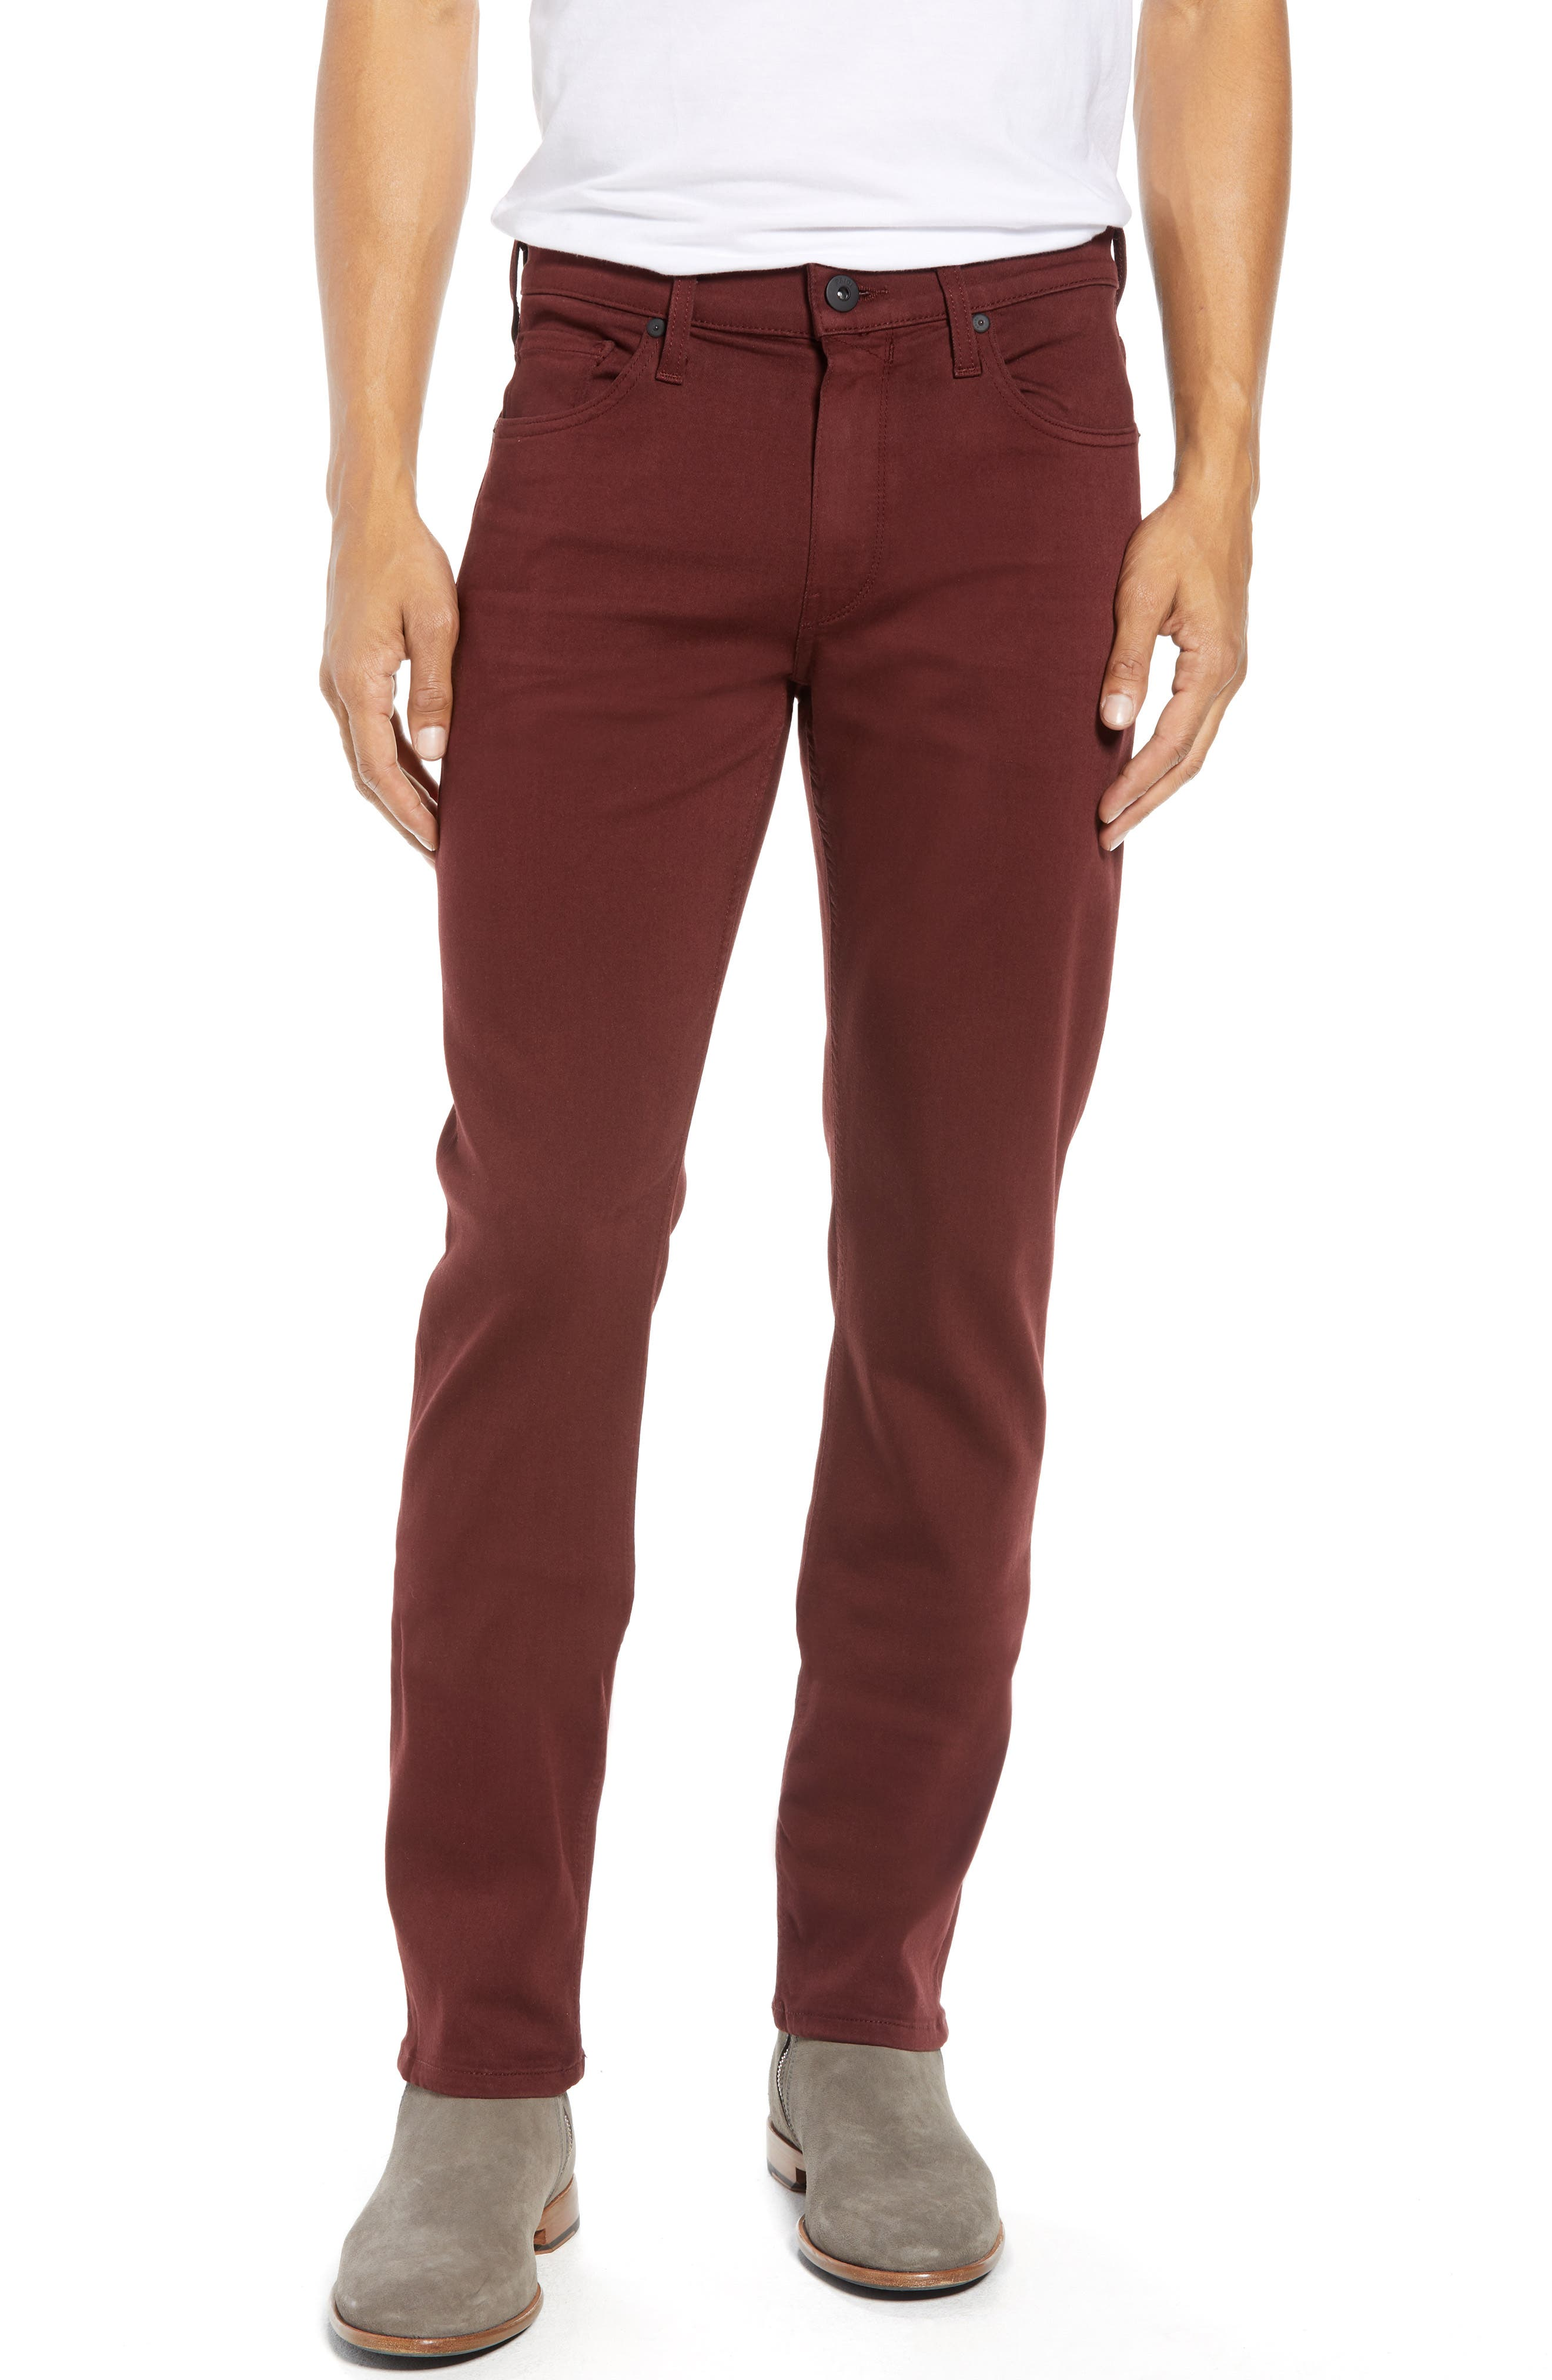 Transcend - Federal Slim Straight Leg Jeans,                             Main thumbnail 1, color,                             RUSTIC WINE